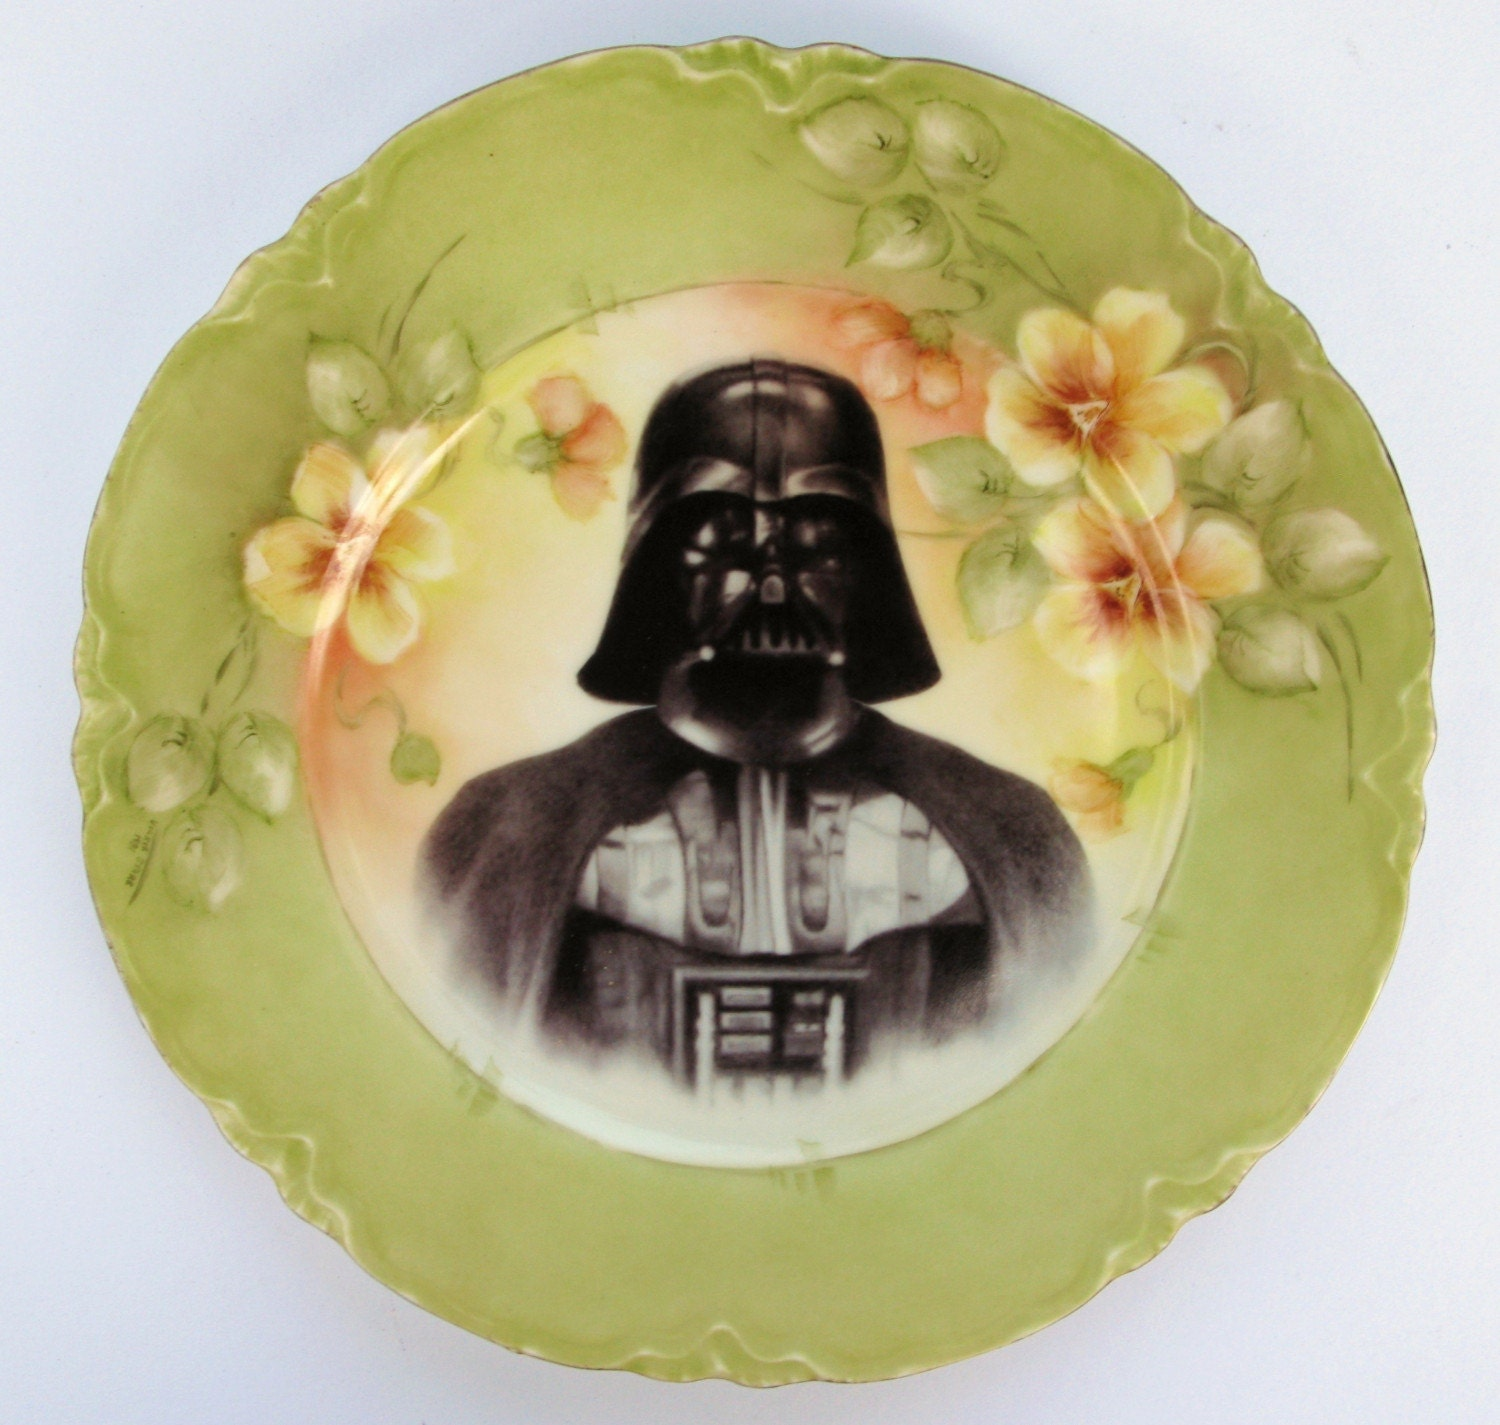 Dark Lord, Darth Vader Portrait Plate - Altered Antique Plate - BeatUpCreations on Etsy